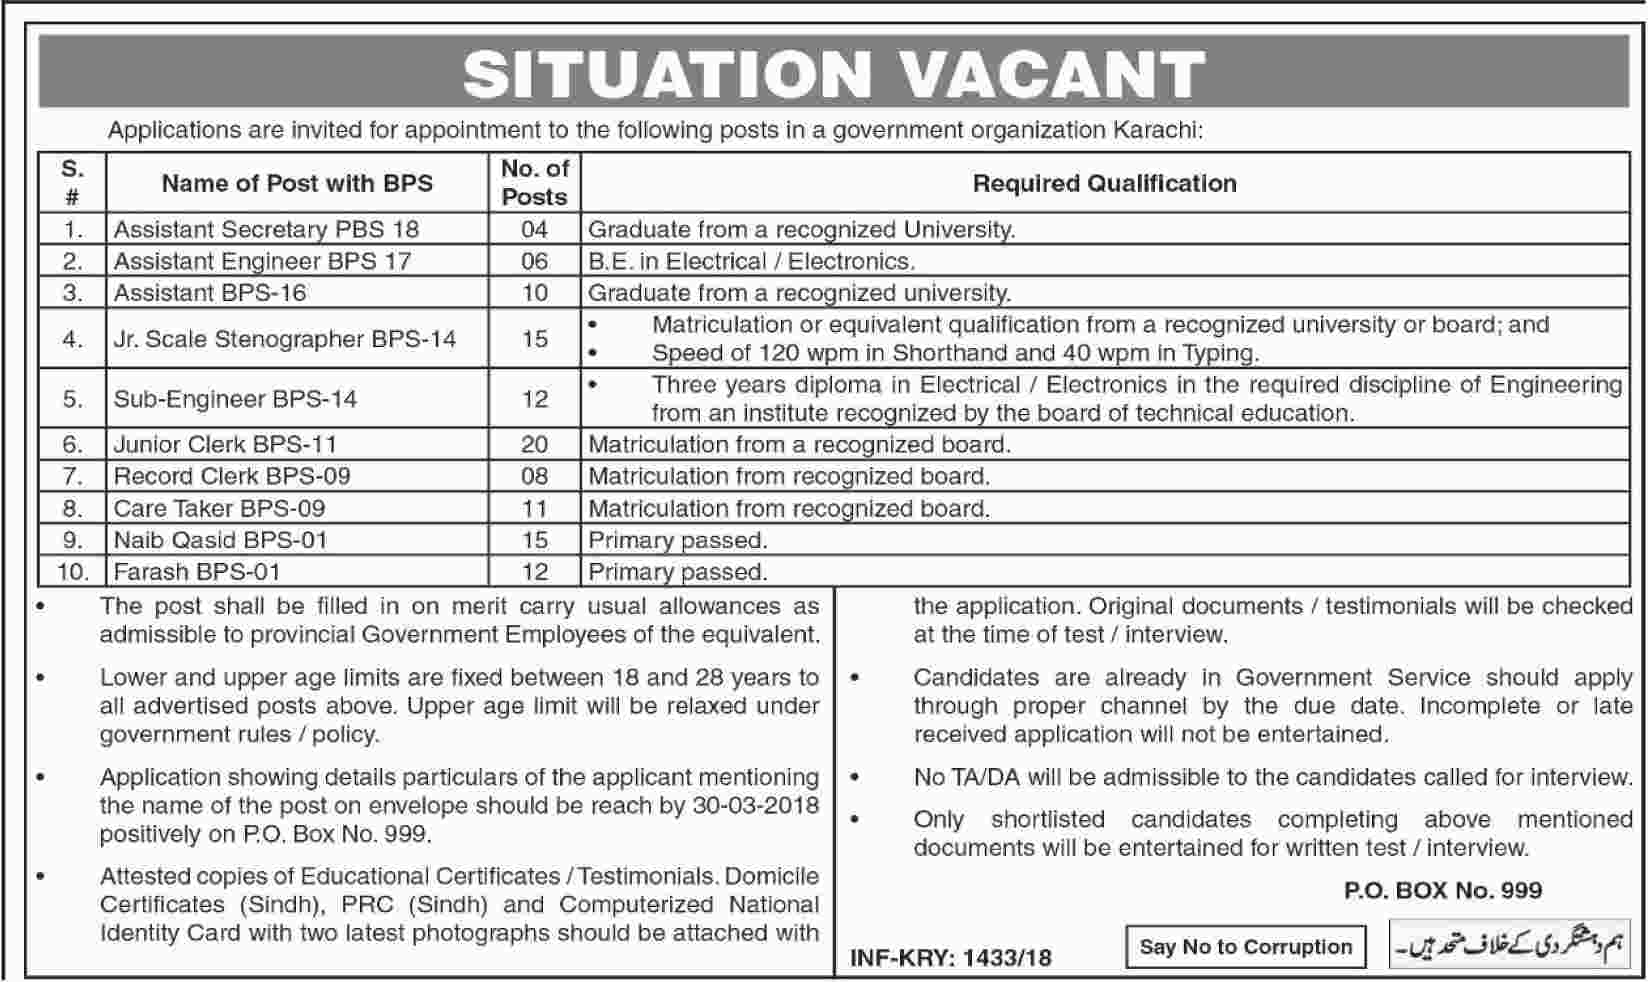 Jobs in a Government Organization in Karachi 16 March 2018